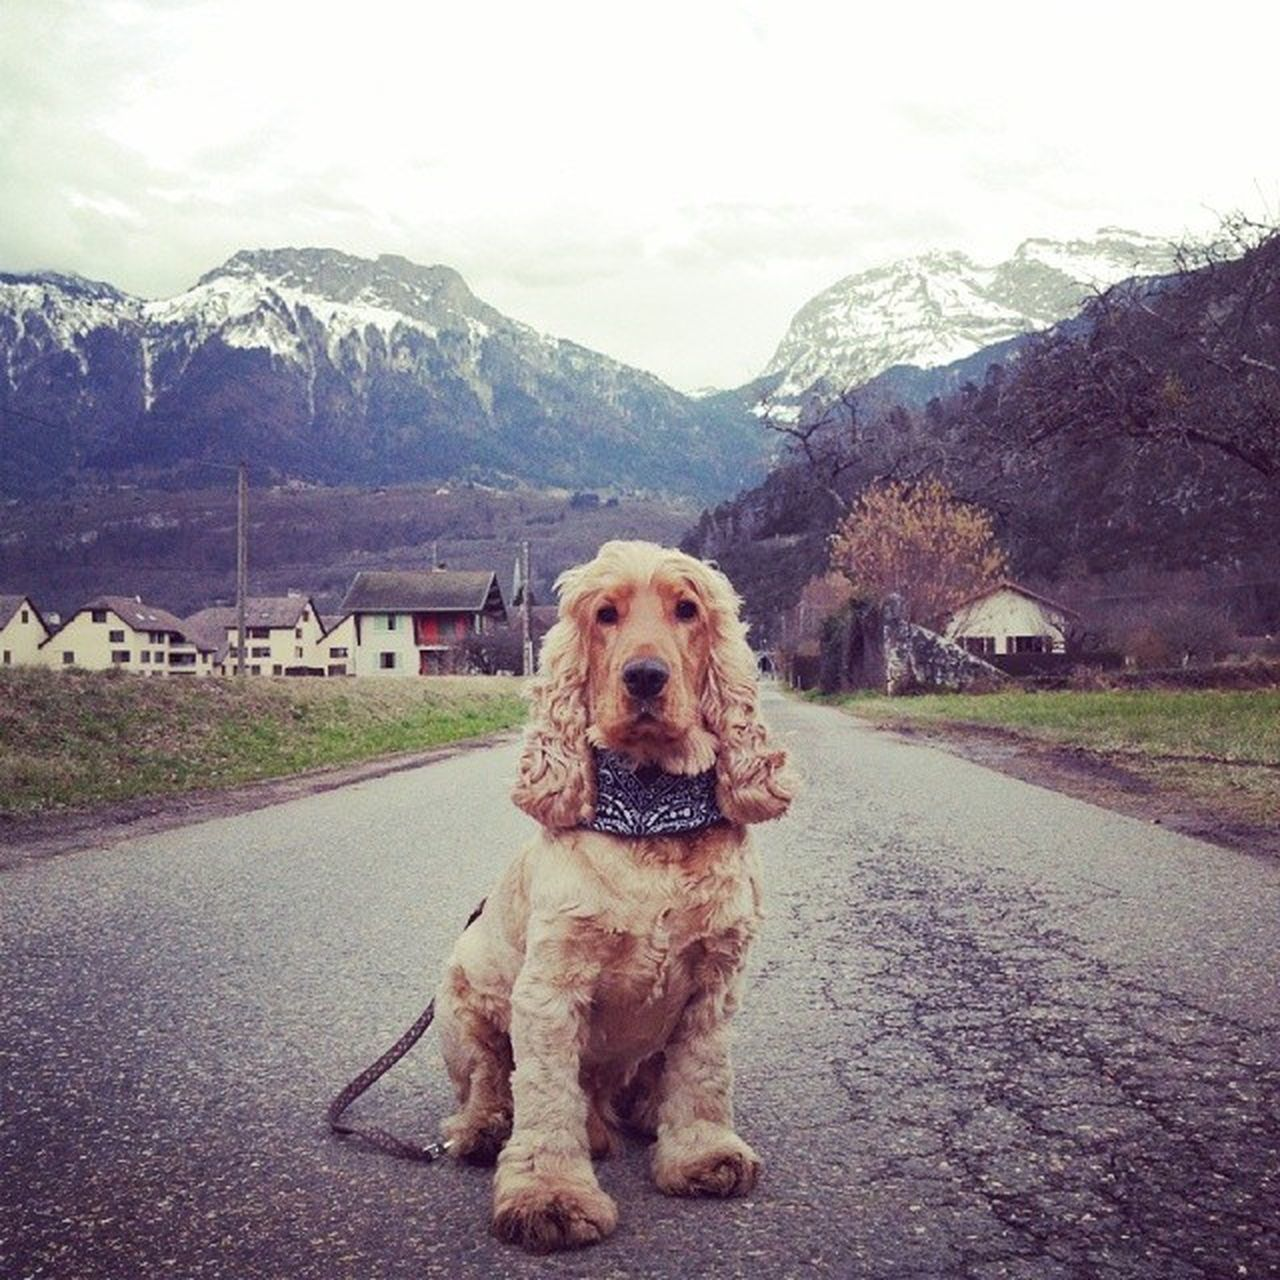 dog, mountain, pets, one animal, animal themes, domestic animals, looking at camera, portrait, mountain range, outdoors, mammal, nature, day, sky, beauty in nature, no people, sitting